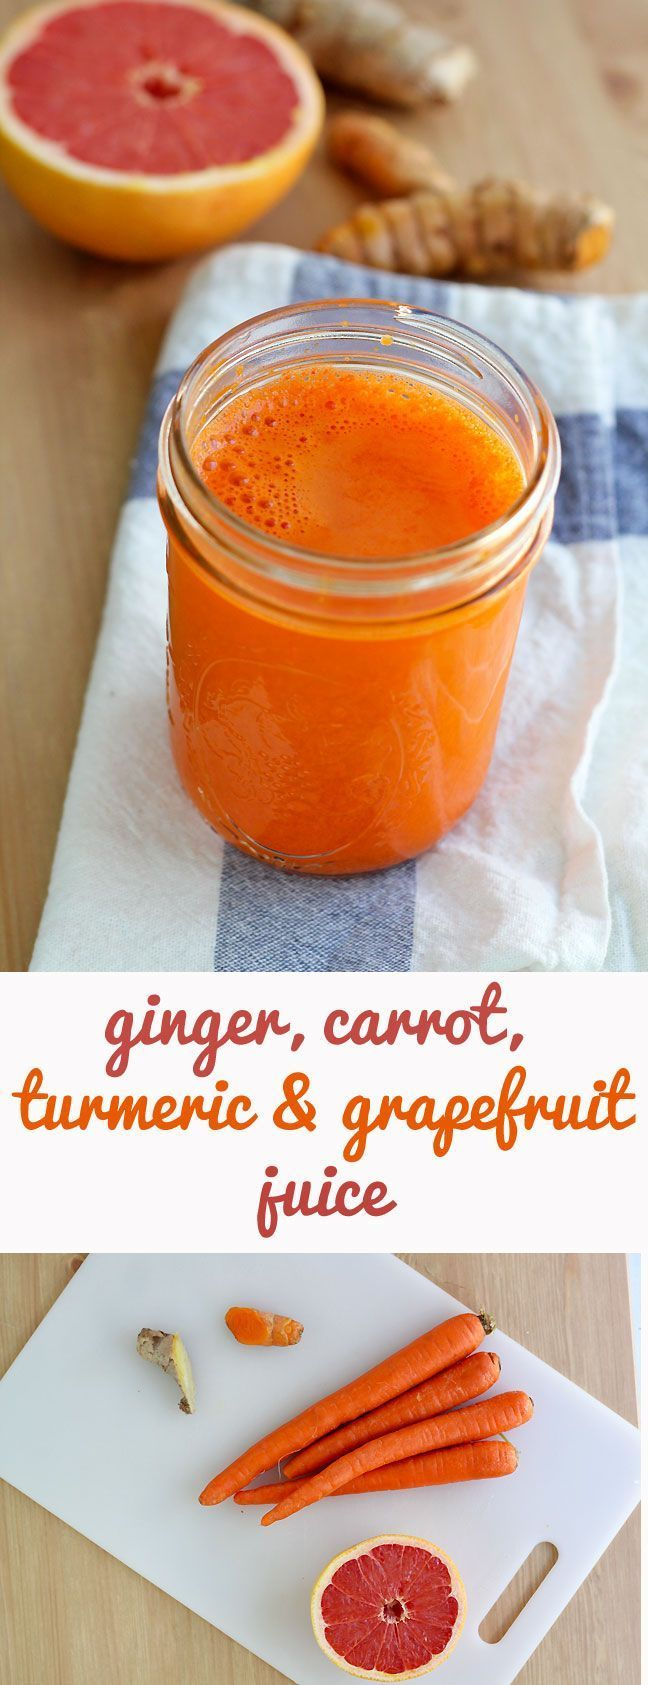 Ginger, Carrot, Turmeric and Grapefruit Juice Recipe - a great anti-inflammatory boost with Vitamin C and antioxidants. #juicing